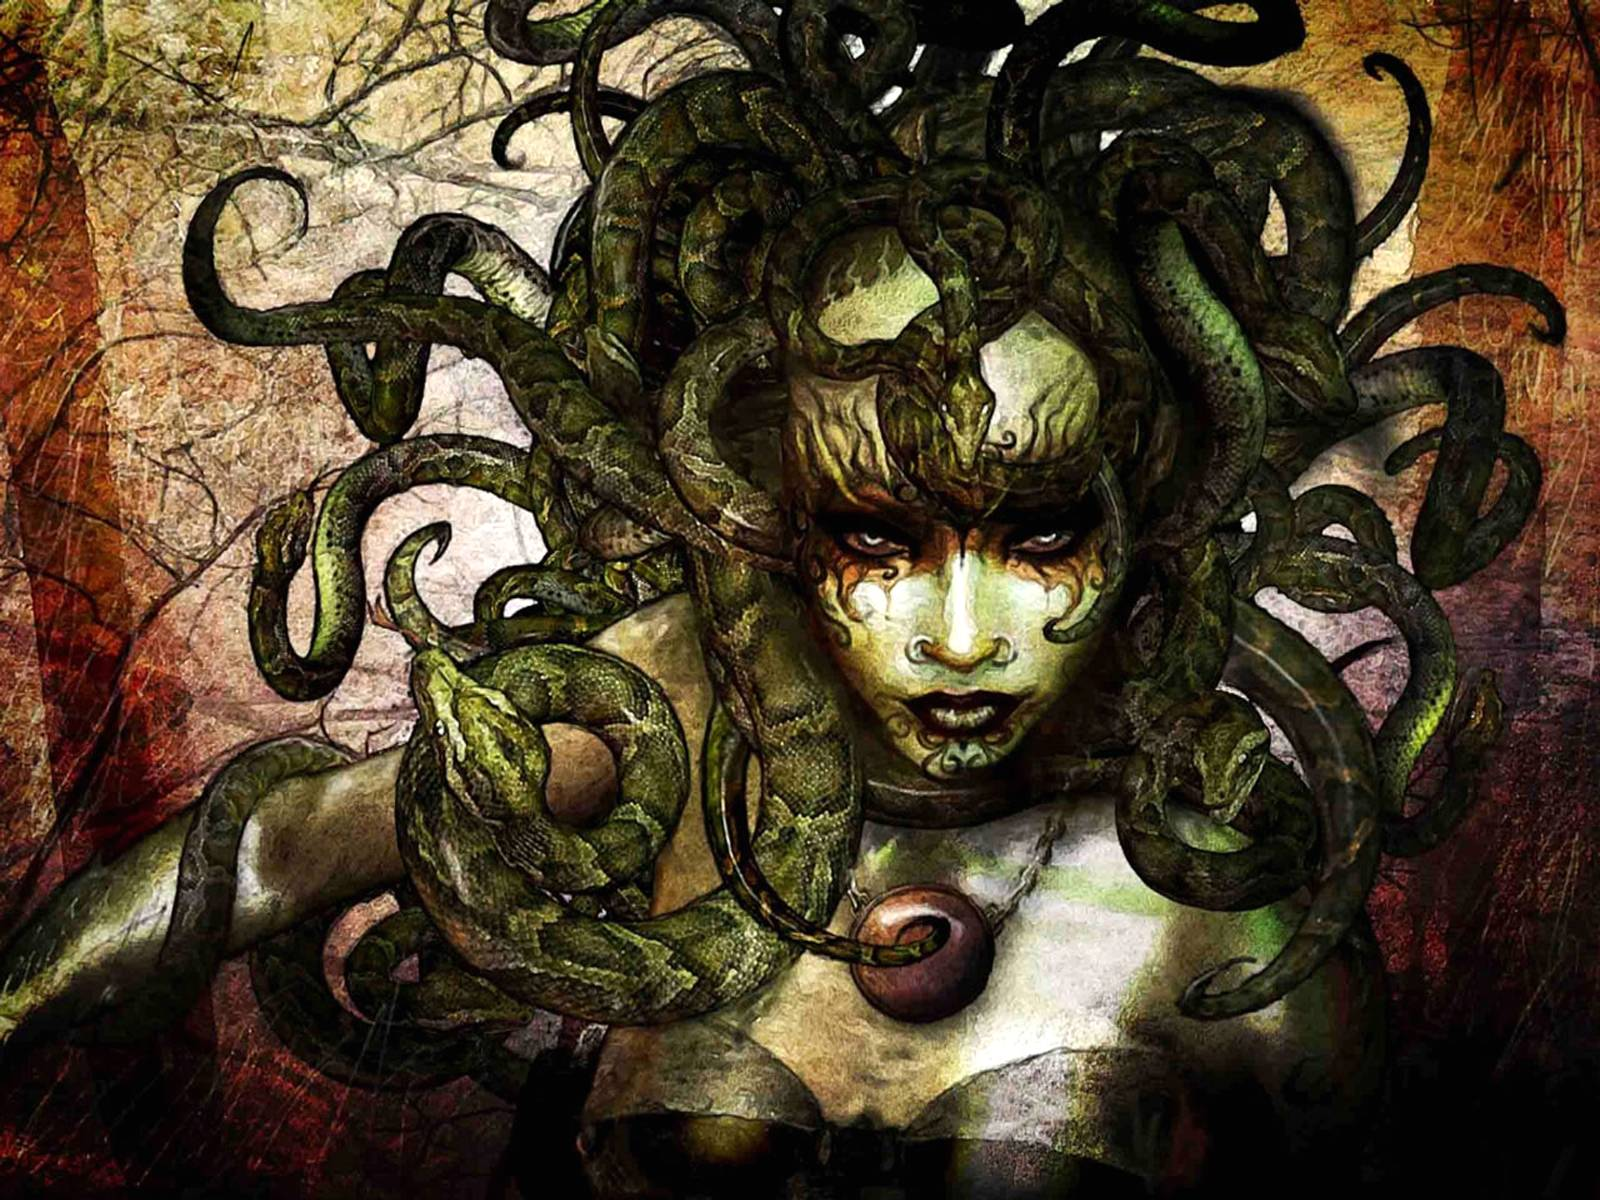 Medusa Illustration An illustration of Medusa In Greek mythology 1600x1200